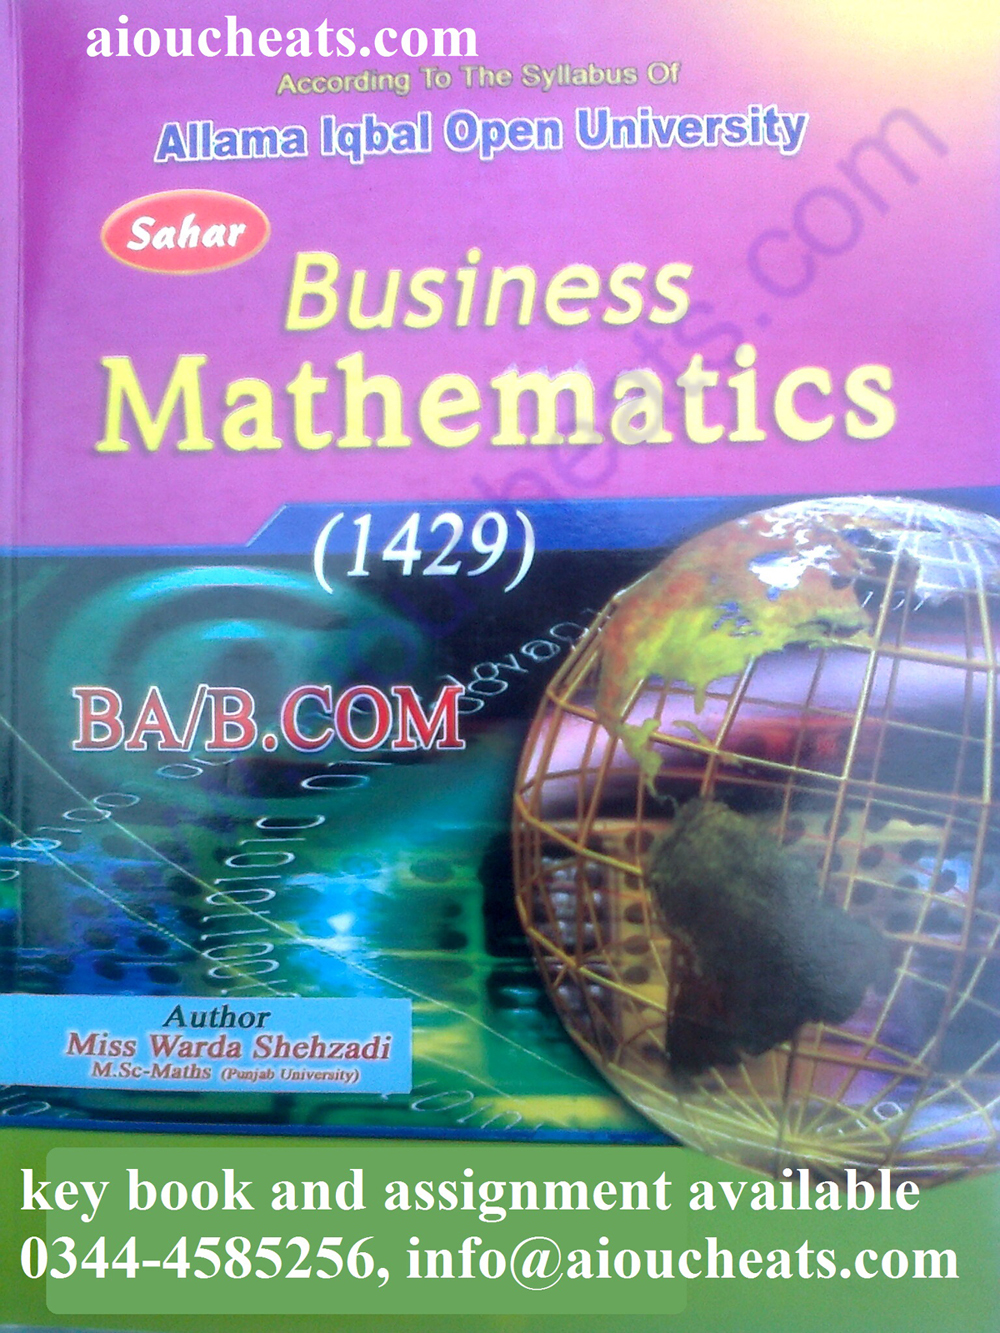 mib business mathematics assignment Applications of mathematics in business give a new to calculating business factors easily the mathematics concepts help business owner to make short term and long term planning and make decisions we can get an overall view of future time in business.